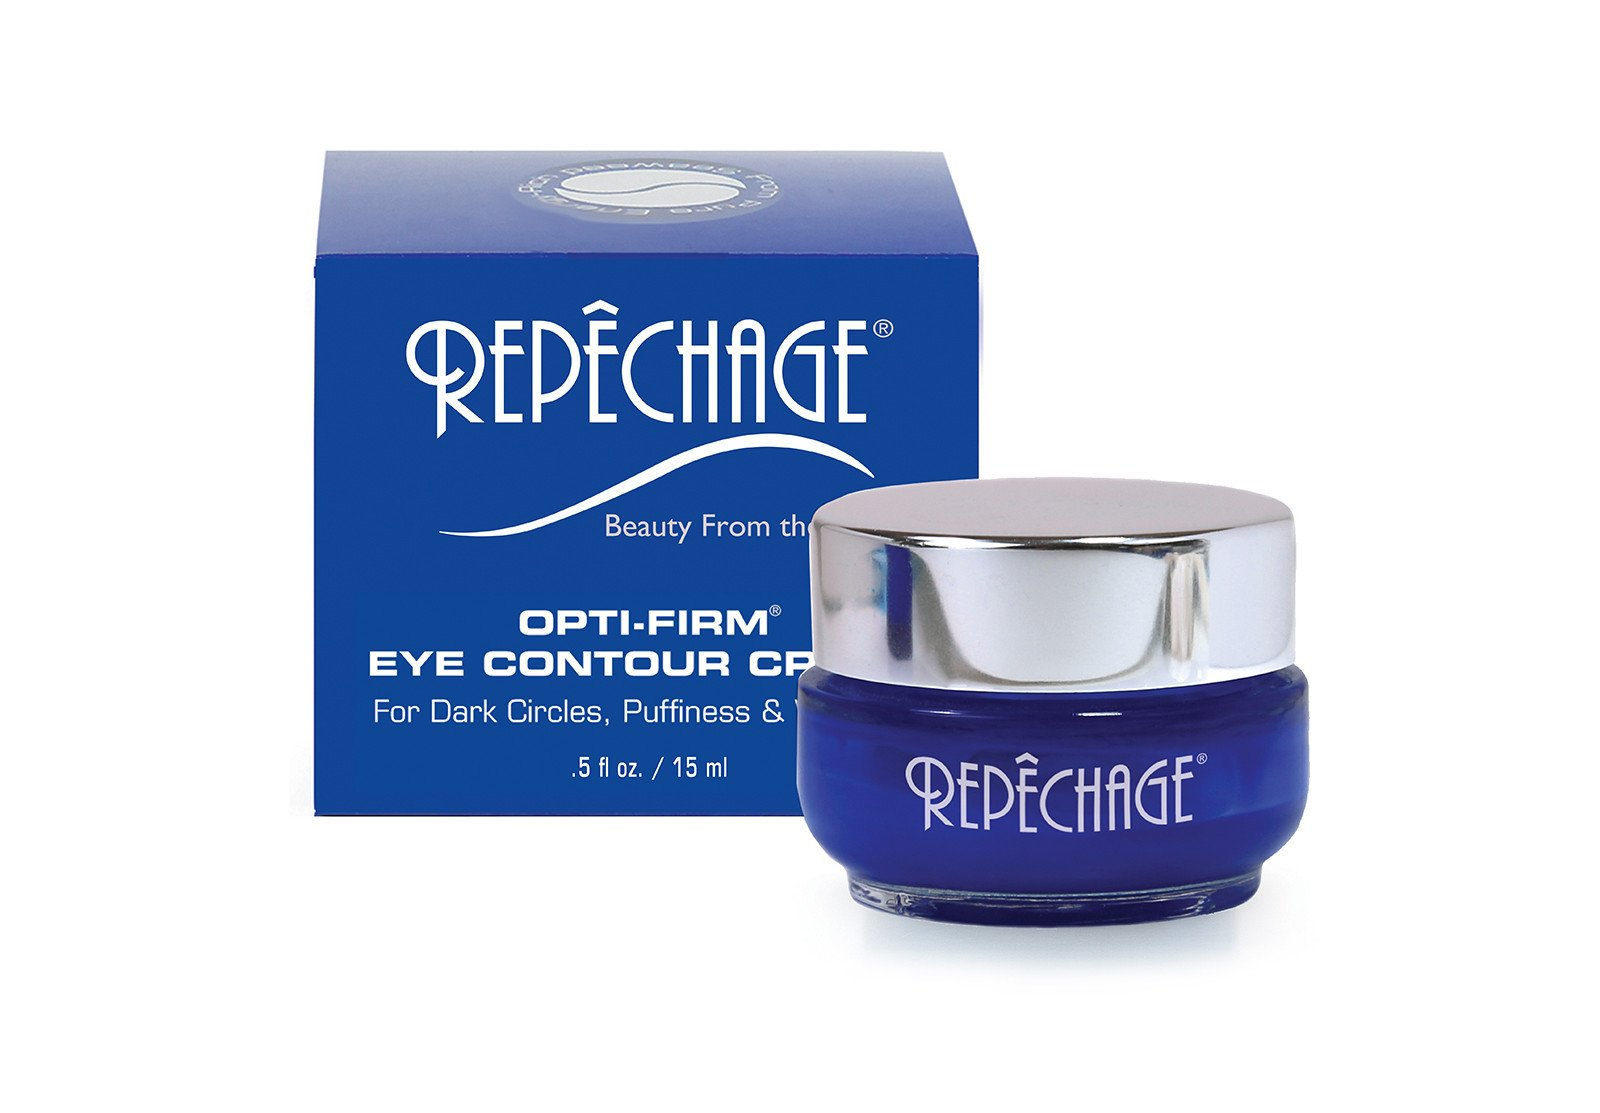 Repechage Opti Firm Eye Contour Cream For Dark Circles Puffiness and Wrinkles 0.5 oz